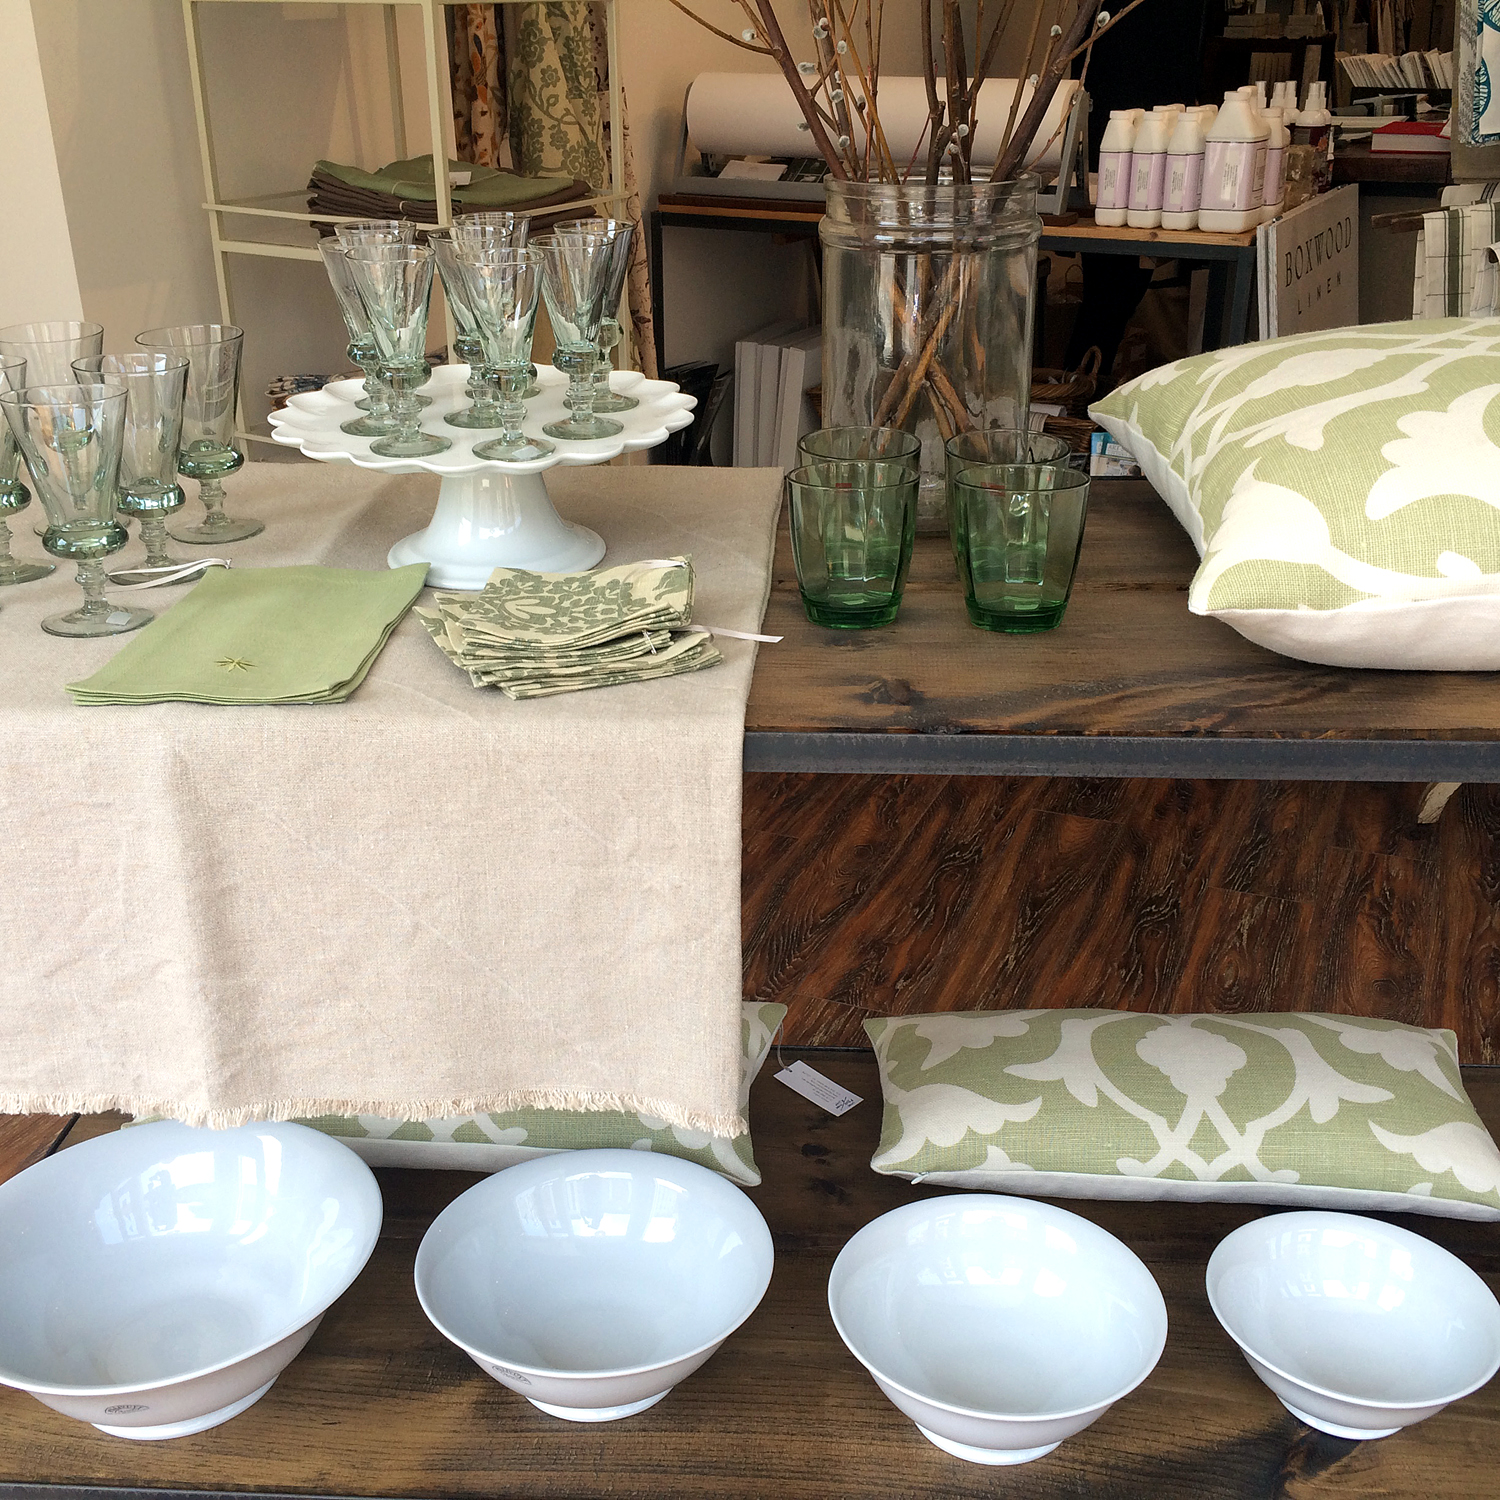 Glassware, Ceramics and Linens